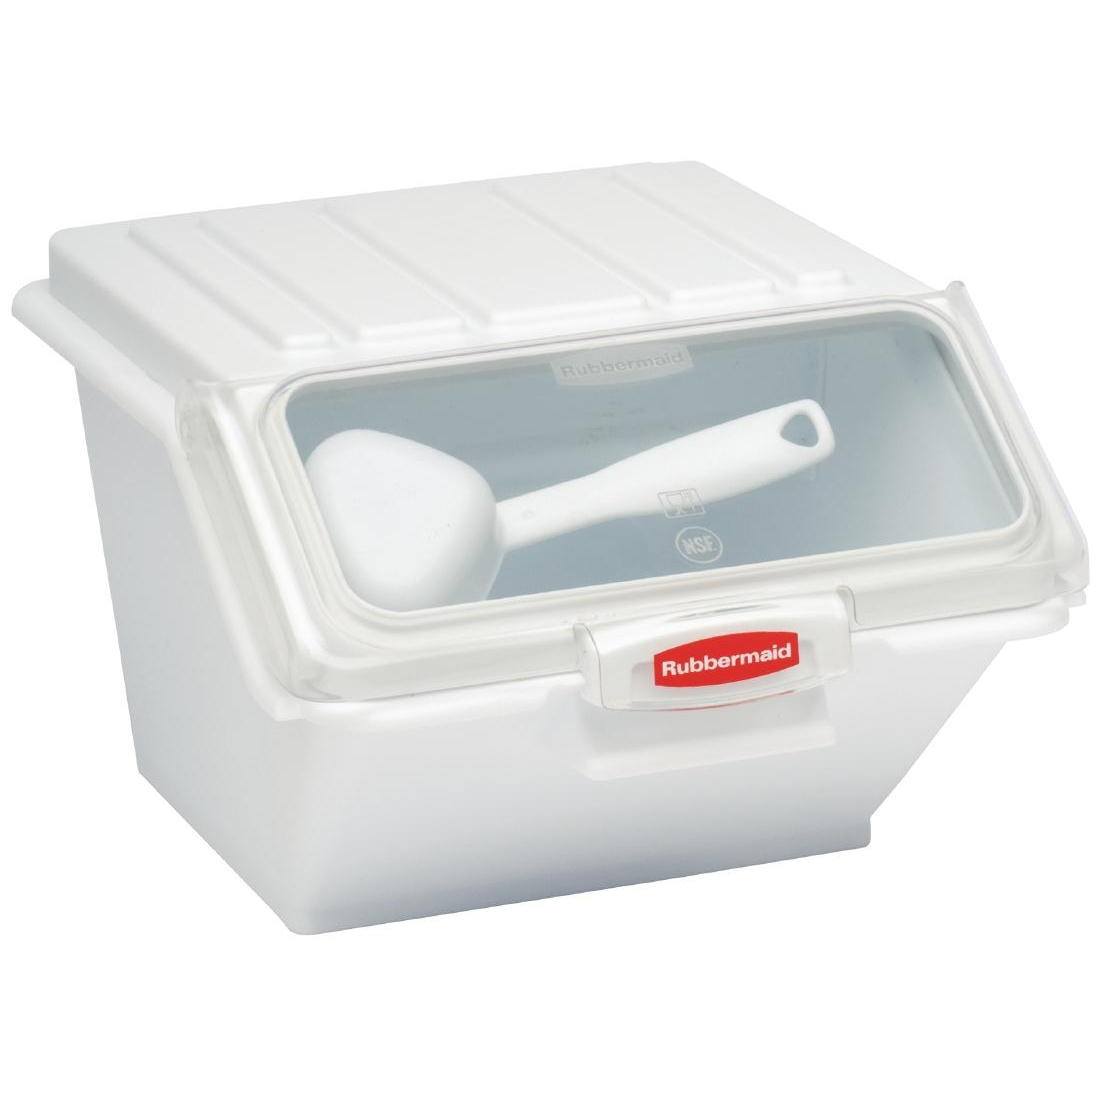 Bac à ingrédients empilable Rubbermaid 9,4L